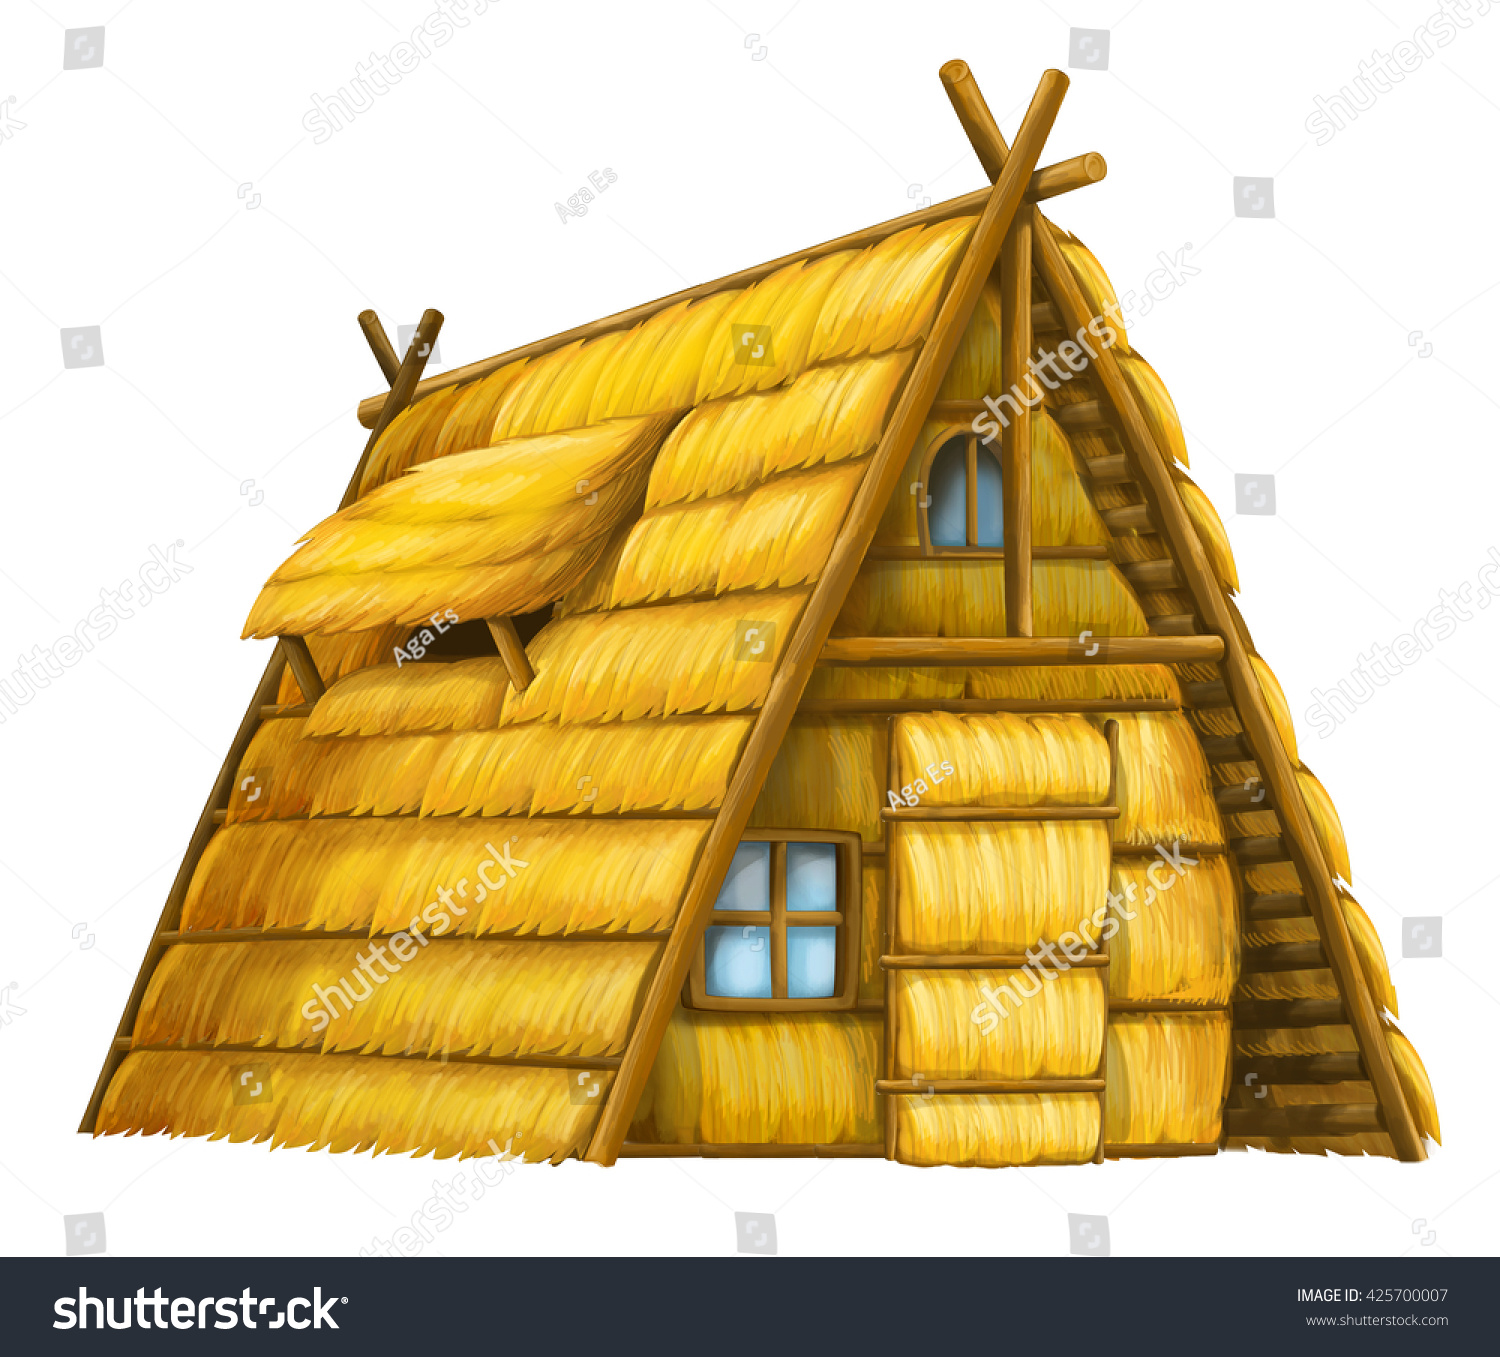 old cartoon hay house isolated illustration stock illustration 425700007 shutterstock. Black Bedroom Furniture Sets. Home Design Ideas